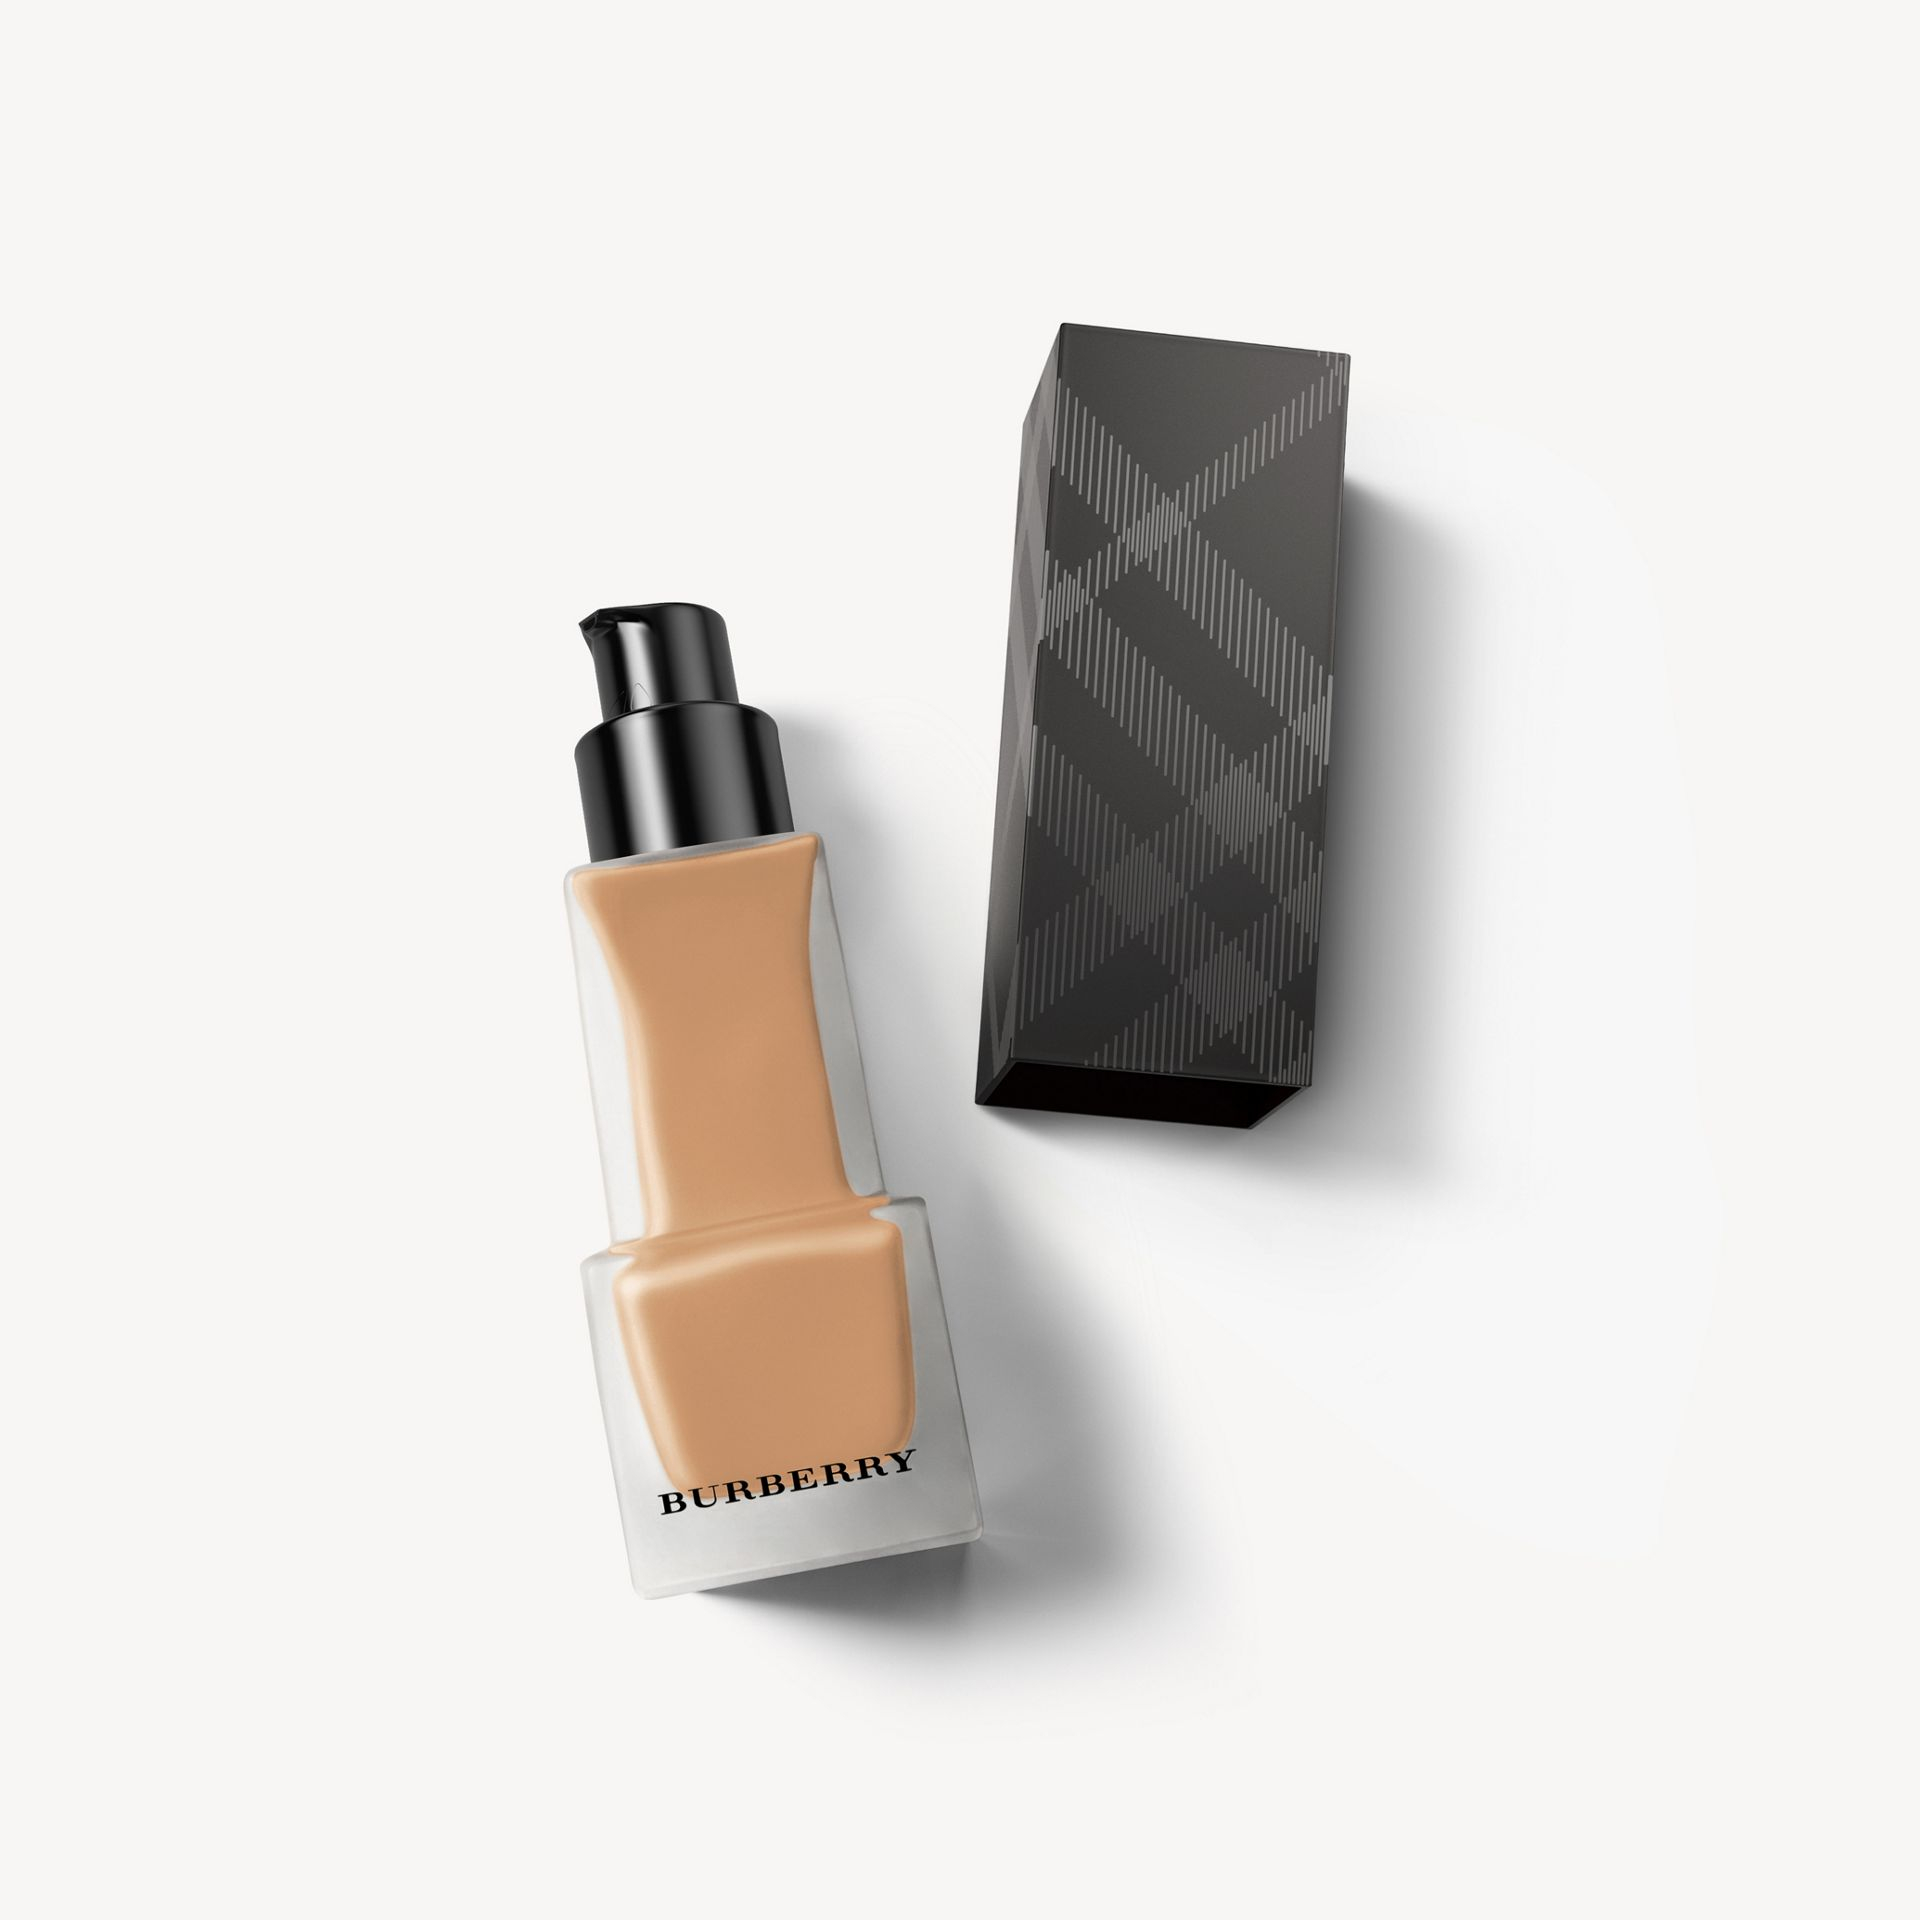 Жидкая основа Matte Glow Liquid Foundation, оттенок 90 Deep Natural - Для женщин | Burberry - изображение 0